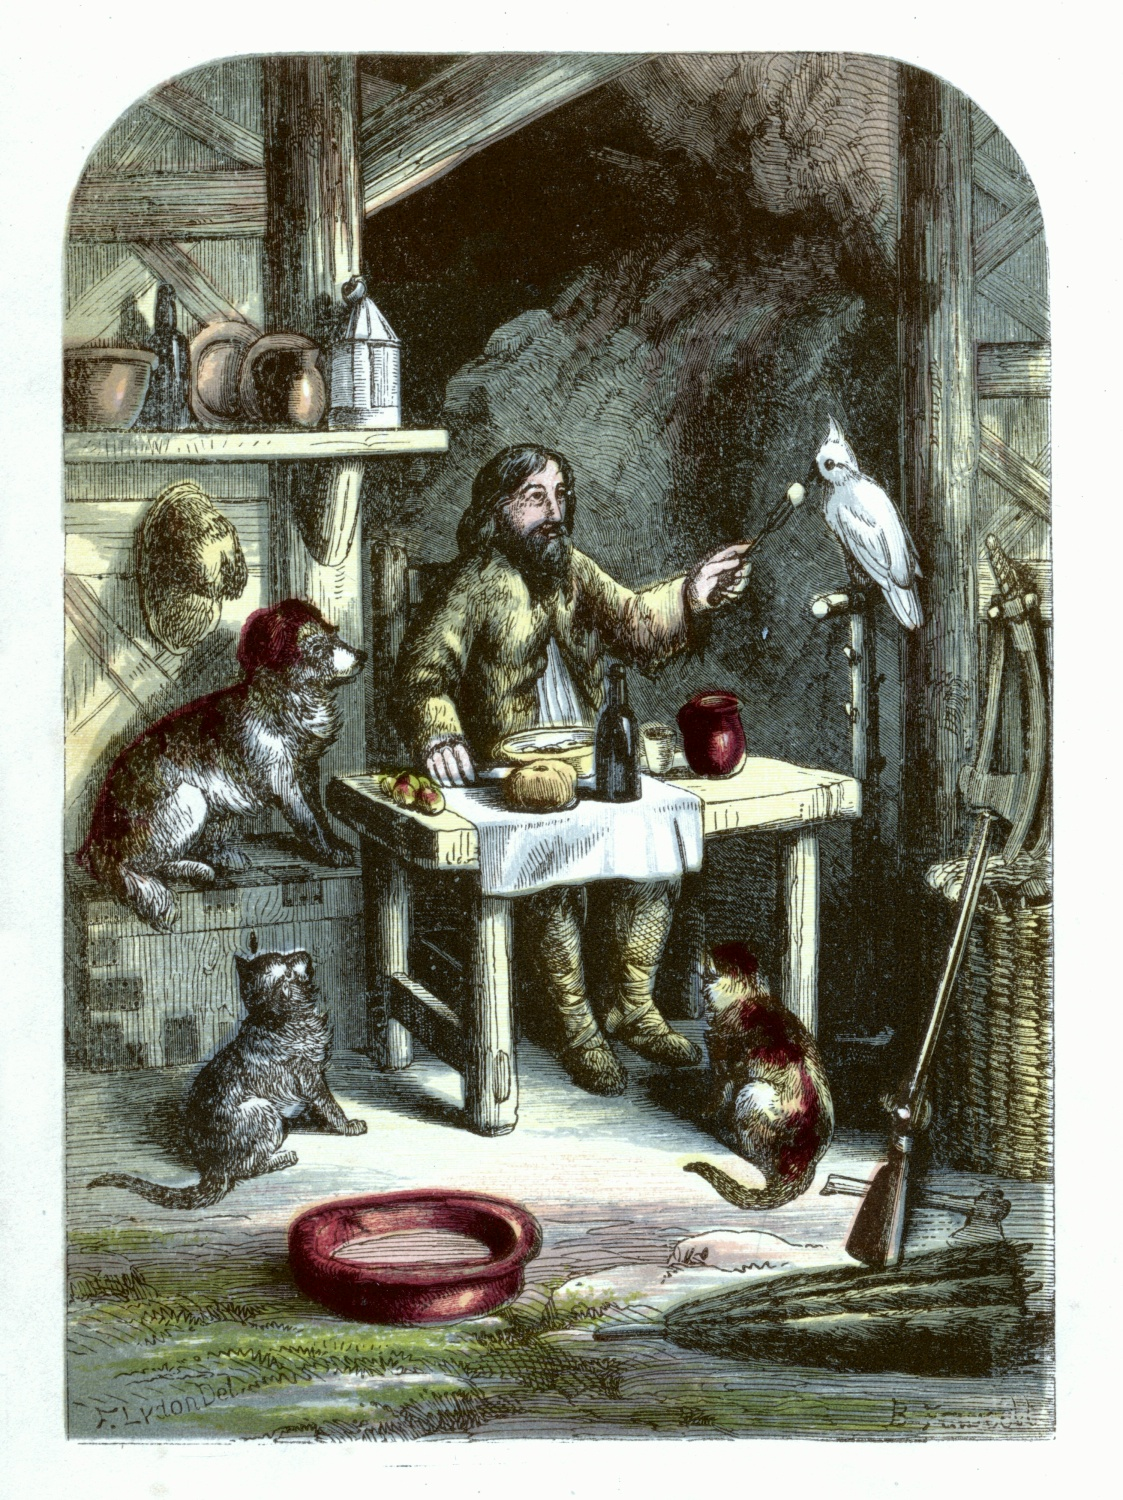 Robinson Crusoe at dinner with his little family